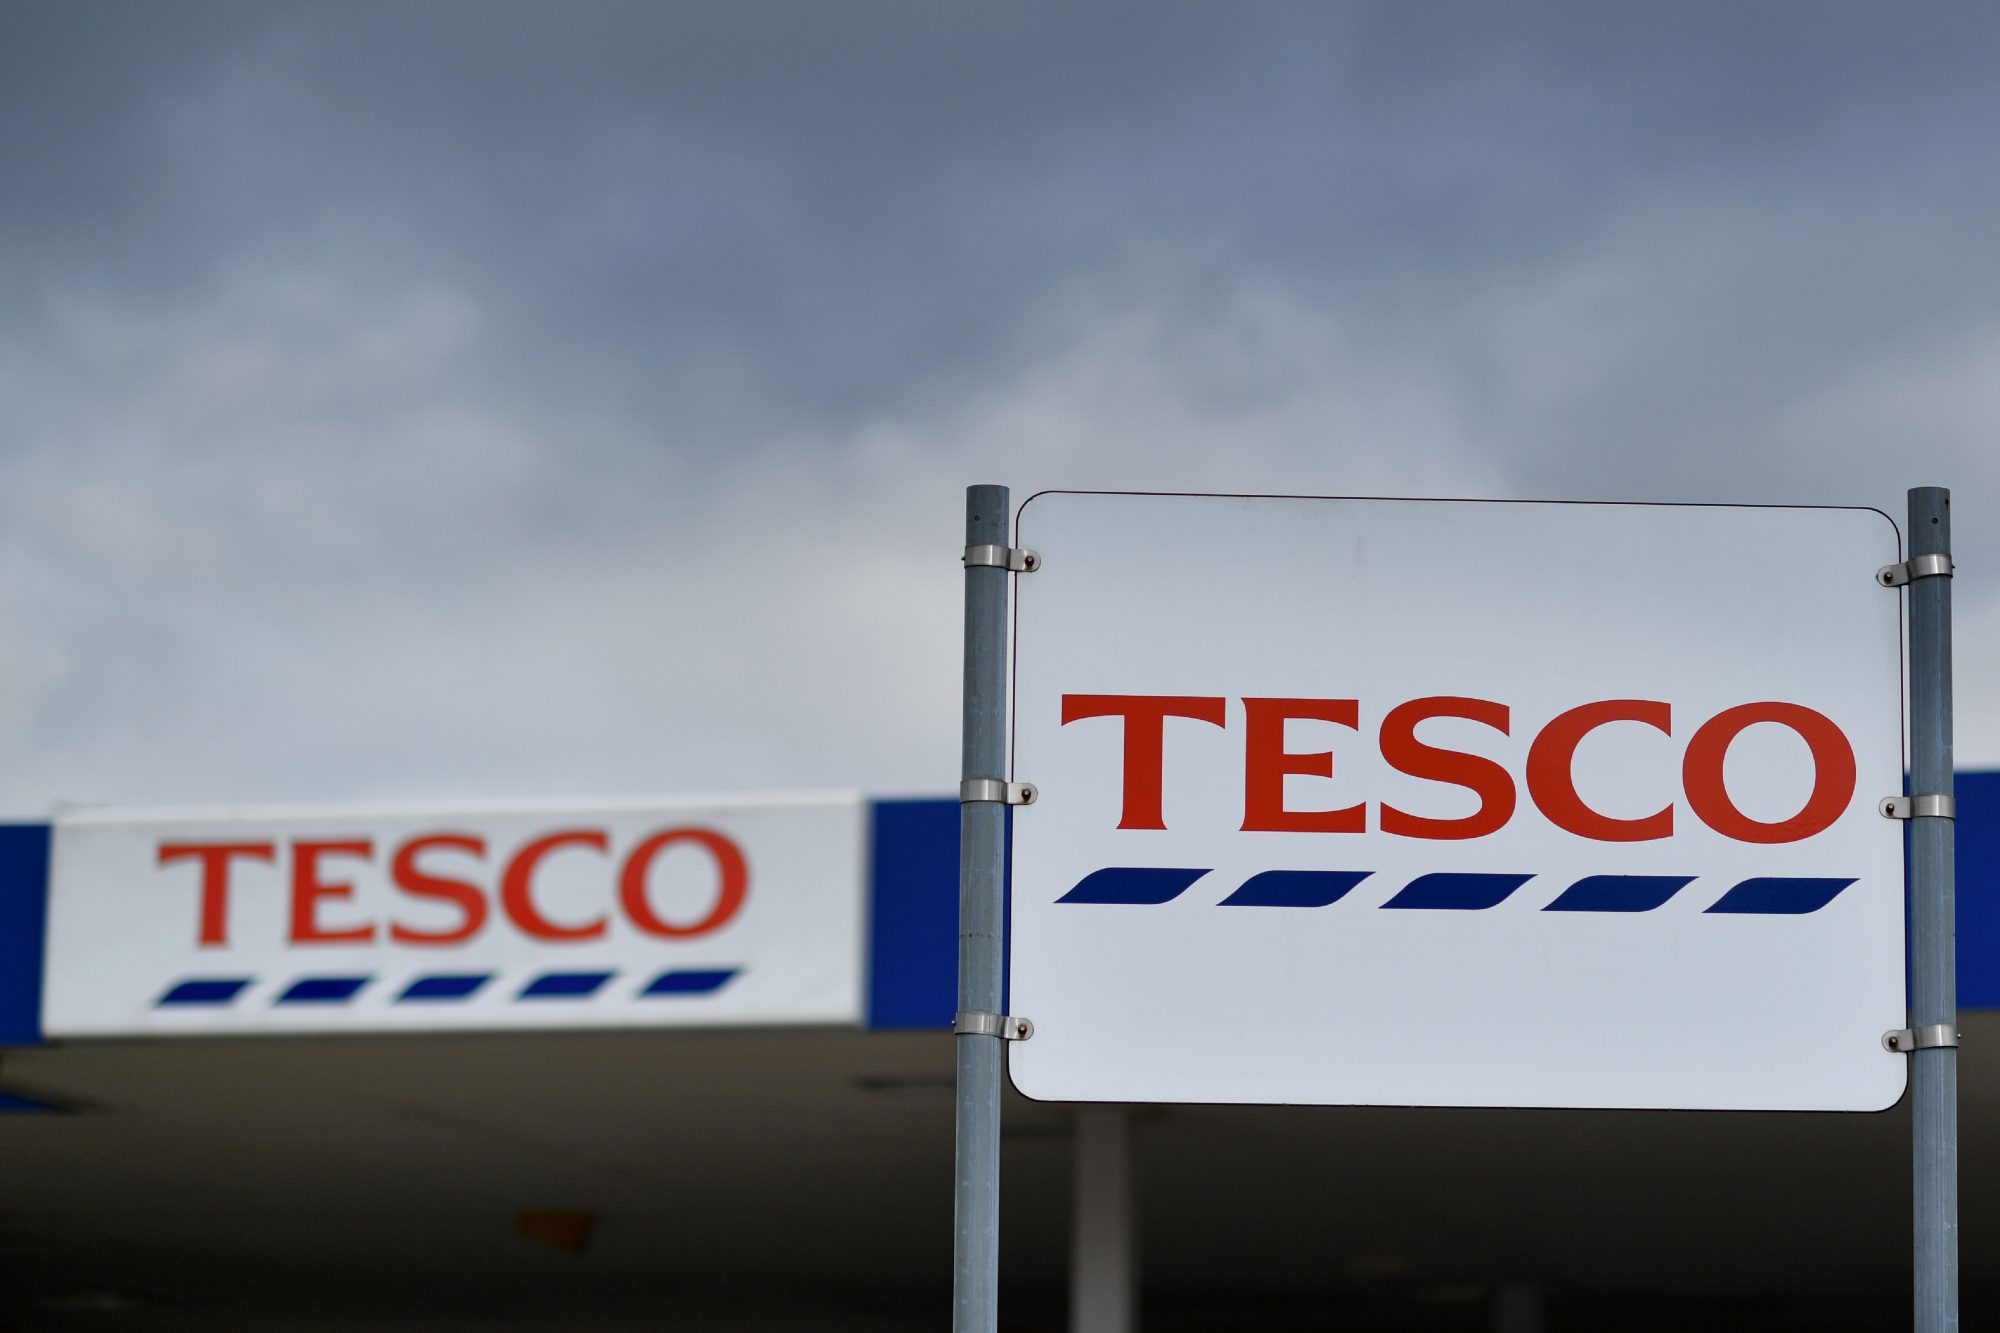 Tesco halts Xmas card production at China factory over forced labour claim